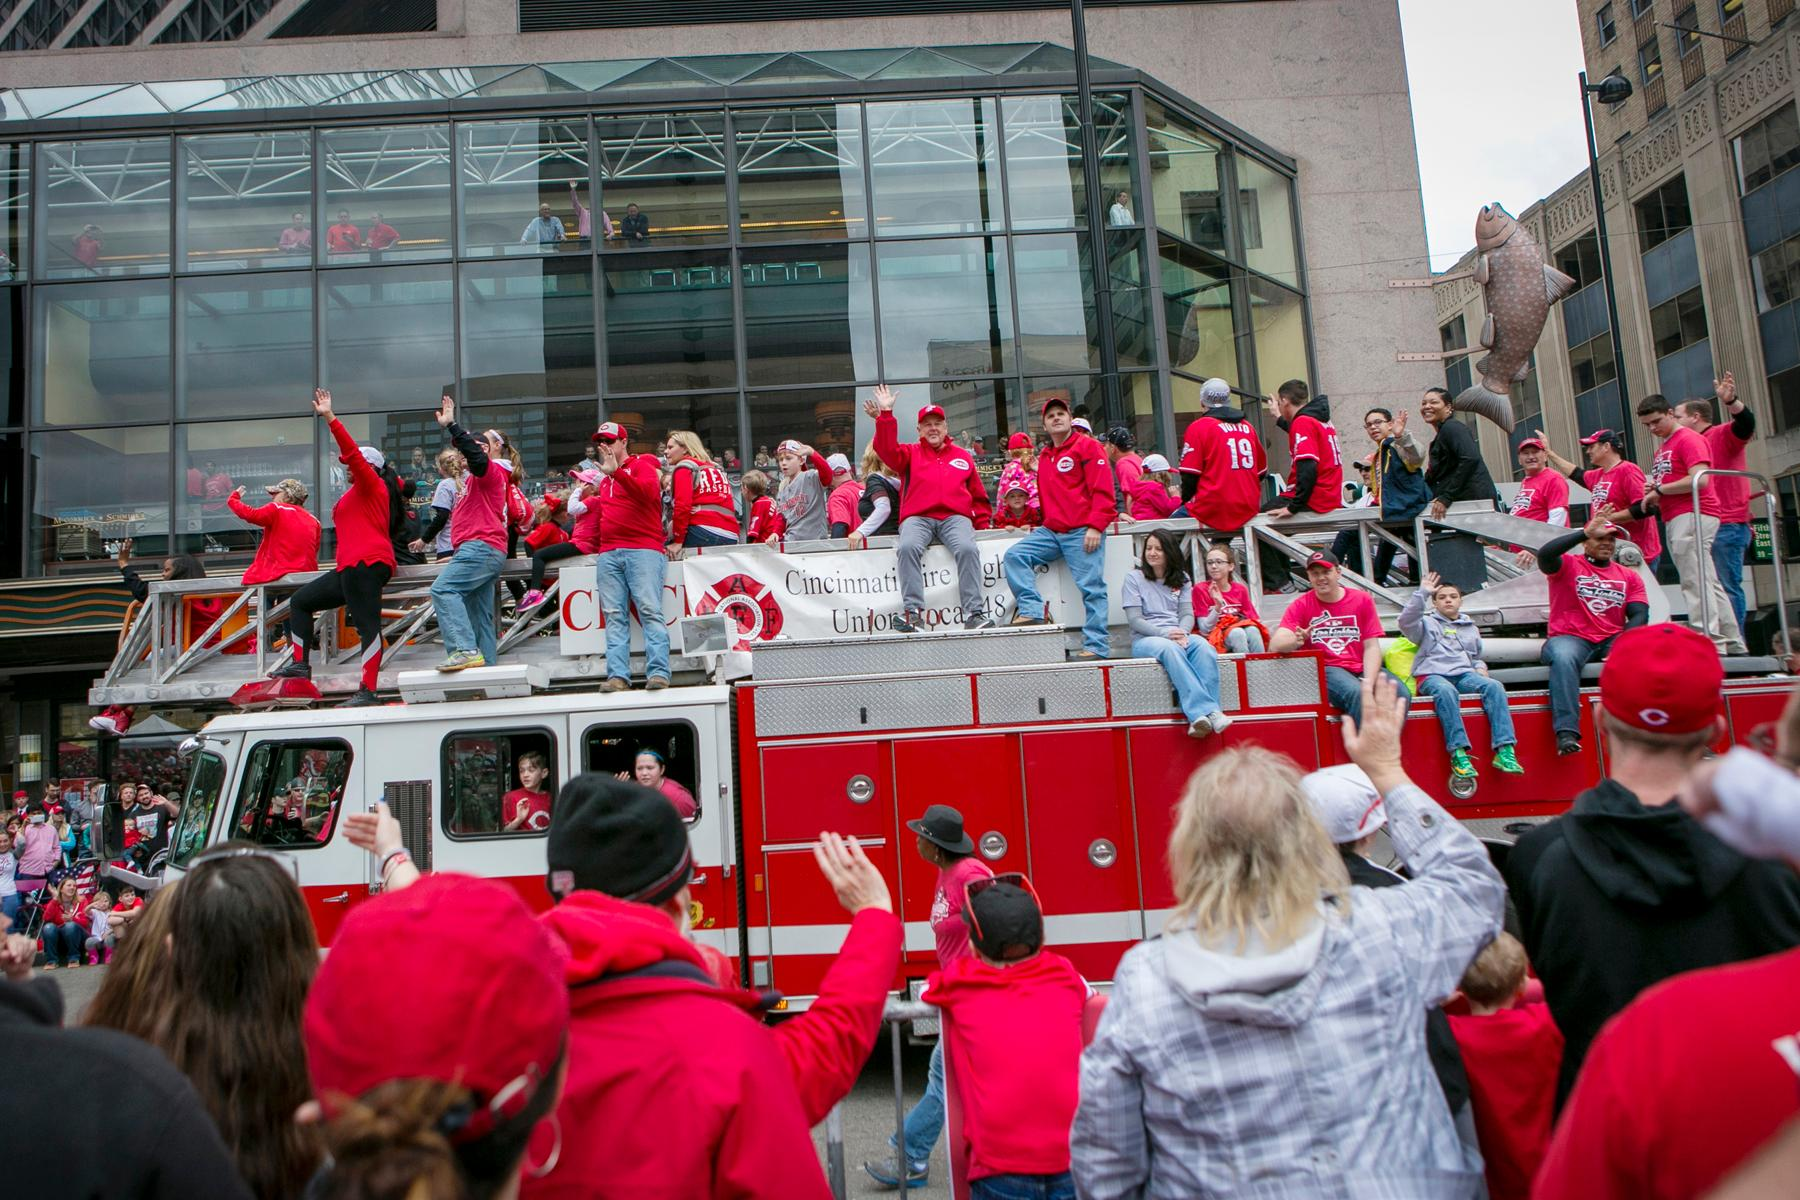 The Reds 98th annual Opening Day Parade took place on Monday, April 3. Following the parade, the Reds barely lost to the Phillies. Final score: 4-3. / Image: Mike Bresnen // Published: 4.4.17